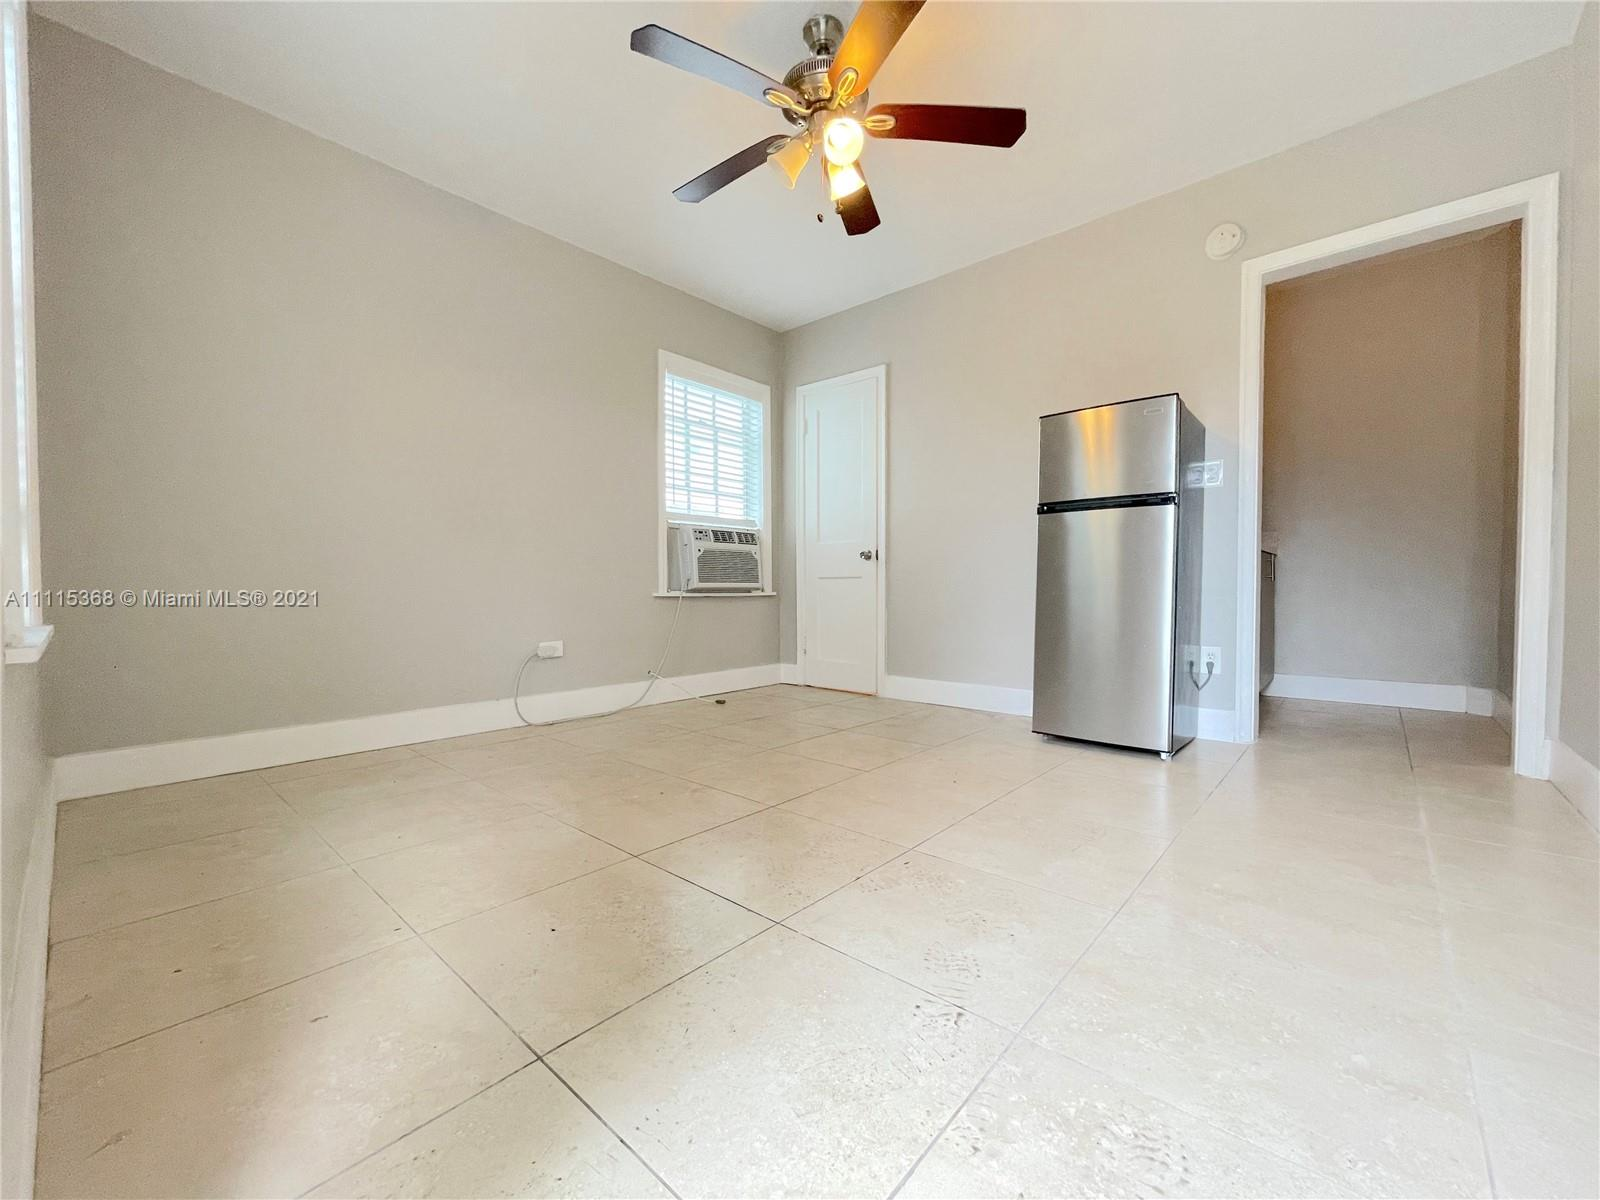 630  77th St #3A For Sale A11115368, FL